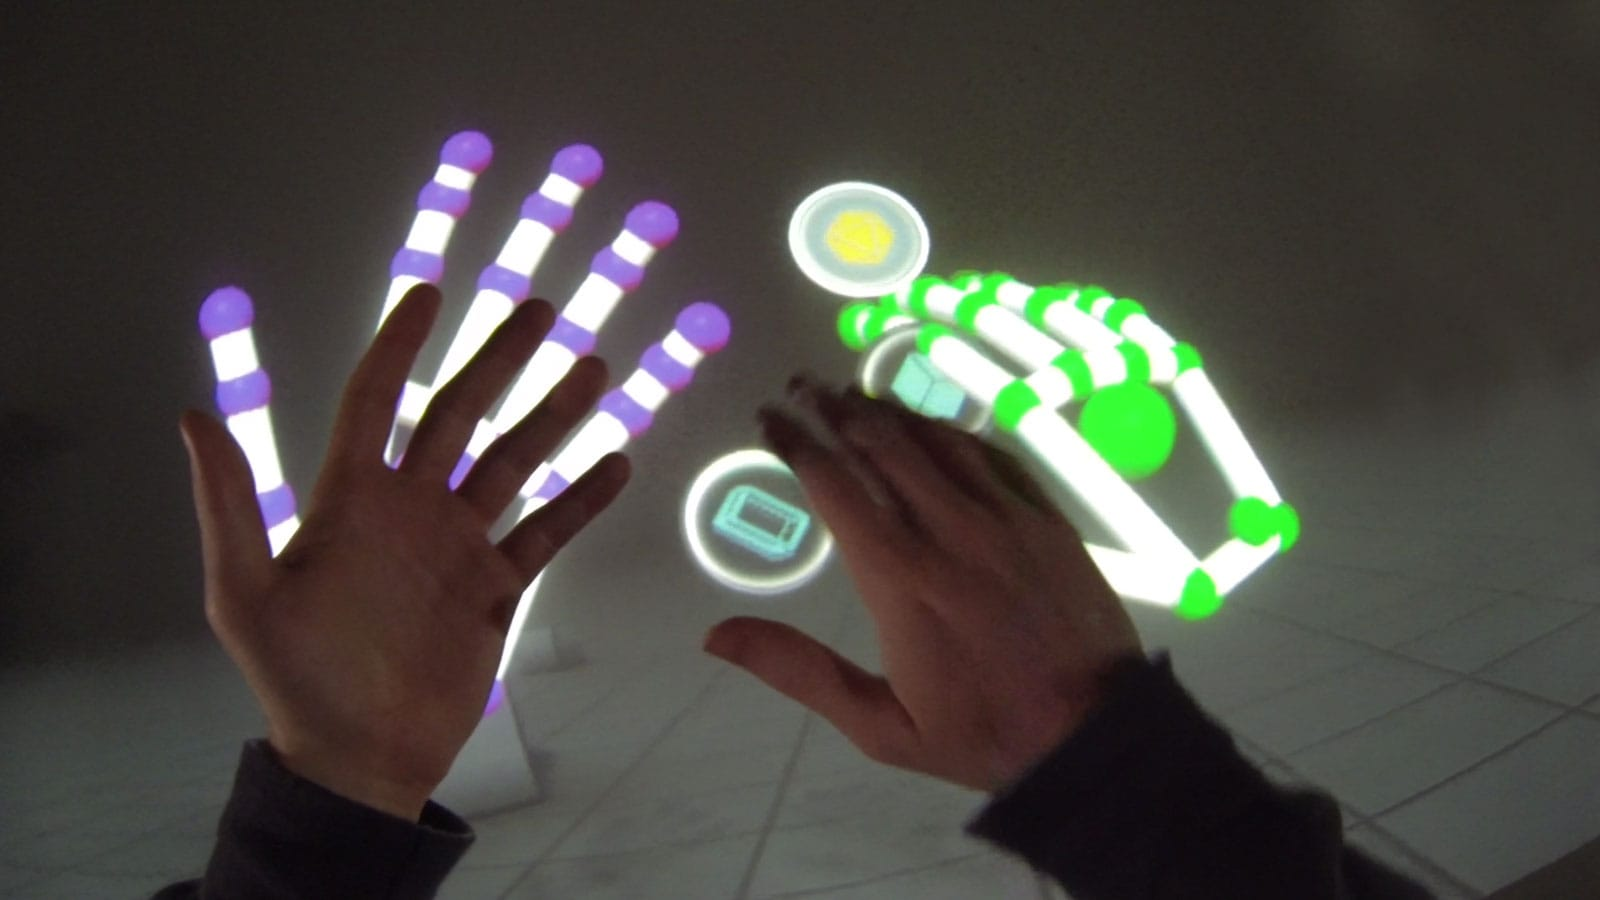 Leap Motion human and VR hands